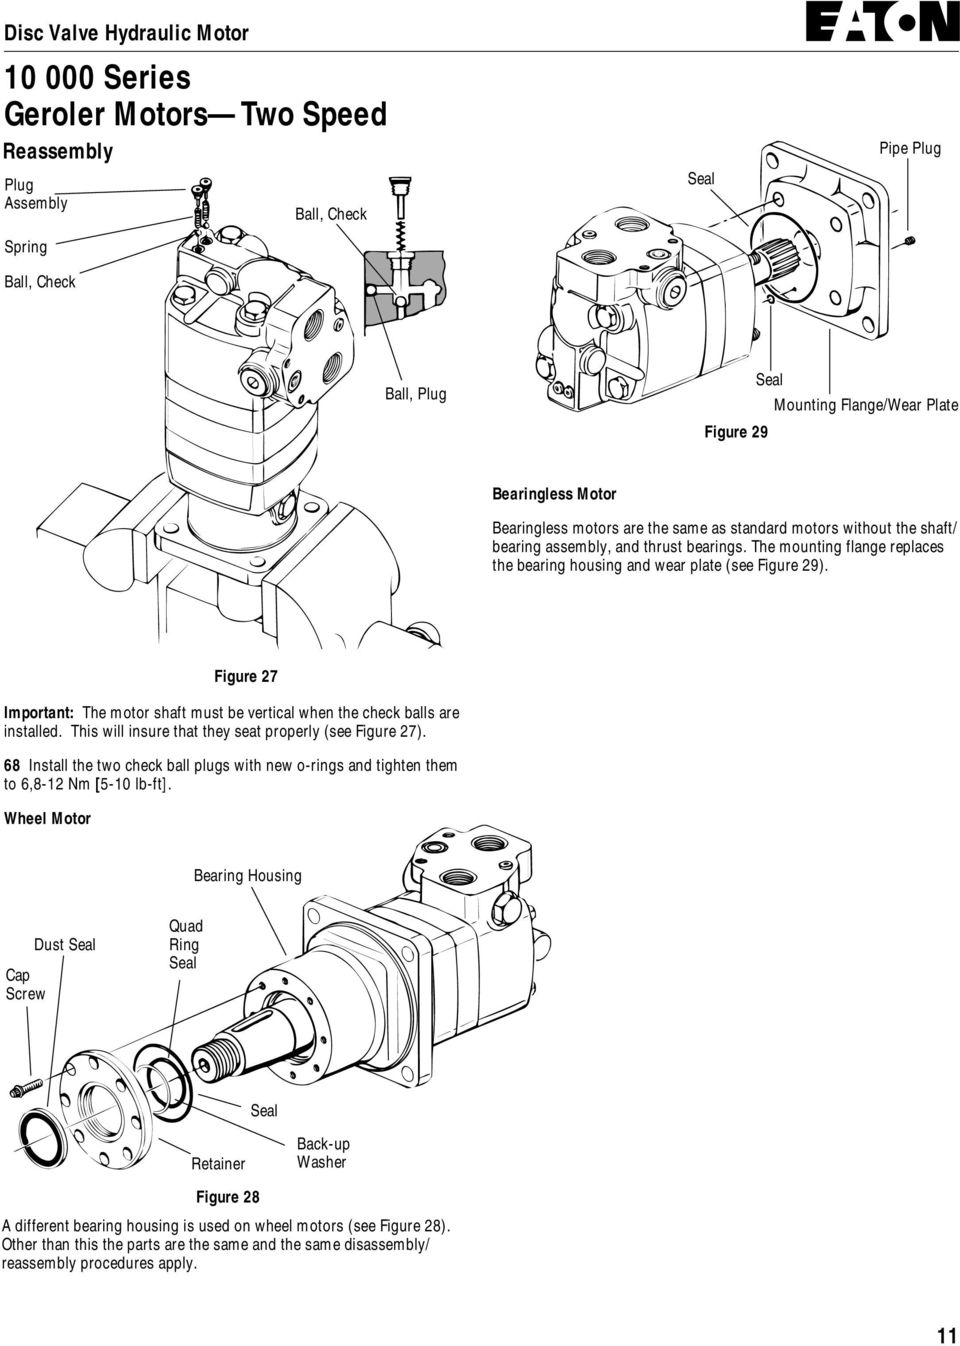 Char-Lynn Hydraulic Motor  Repair Information Series  October, PDF